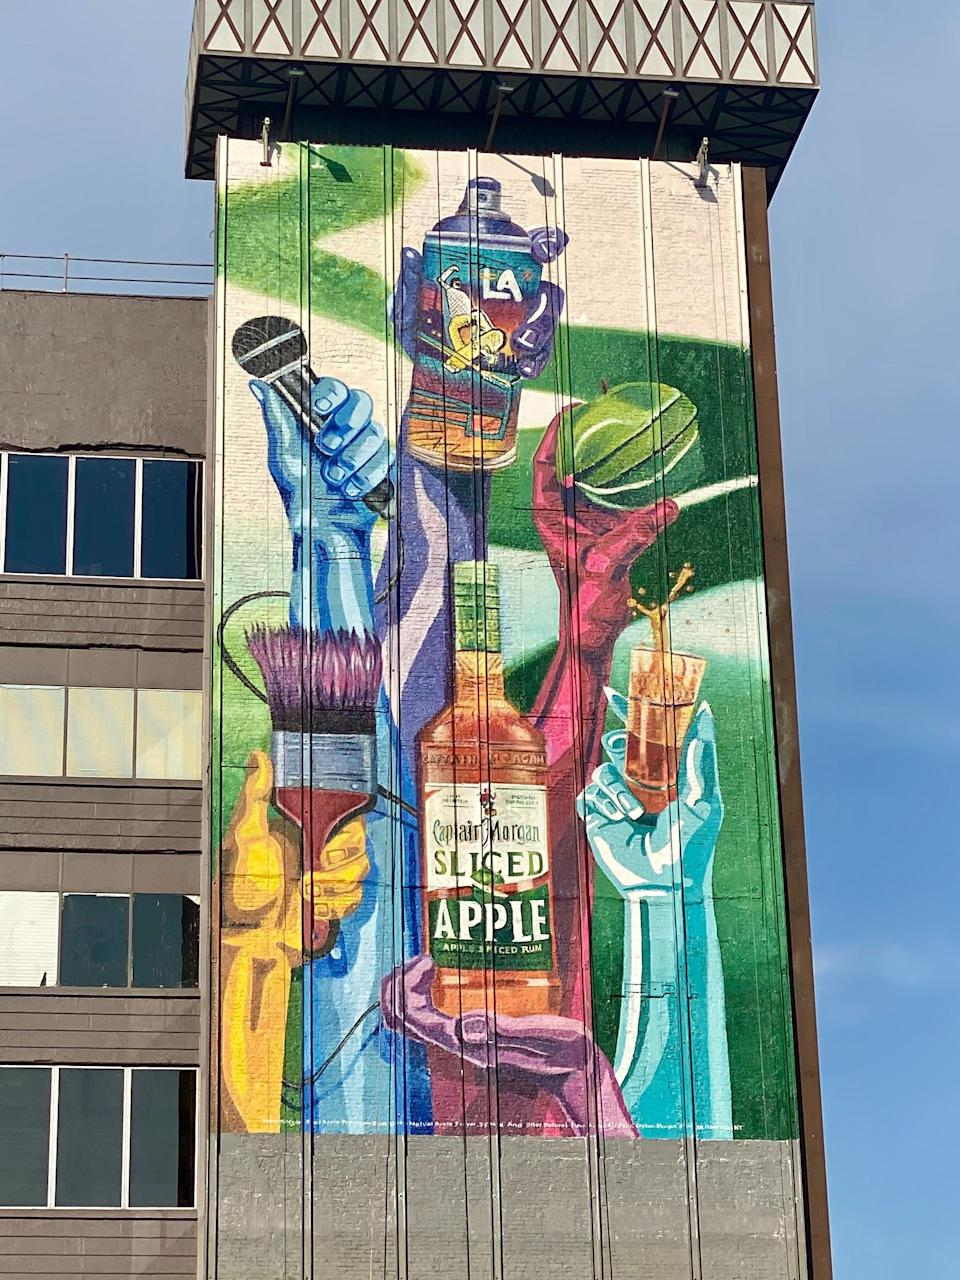 Captain Morgan Sliced Apple Celebrates The LA Community with New Mural by Local Artist MADSTEEZ